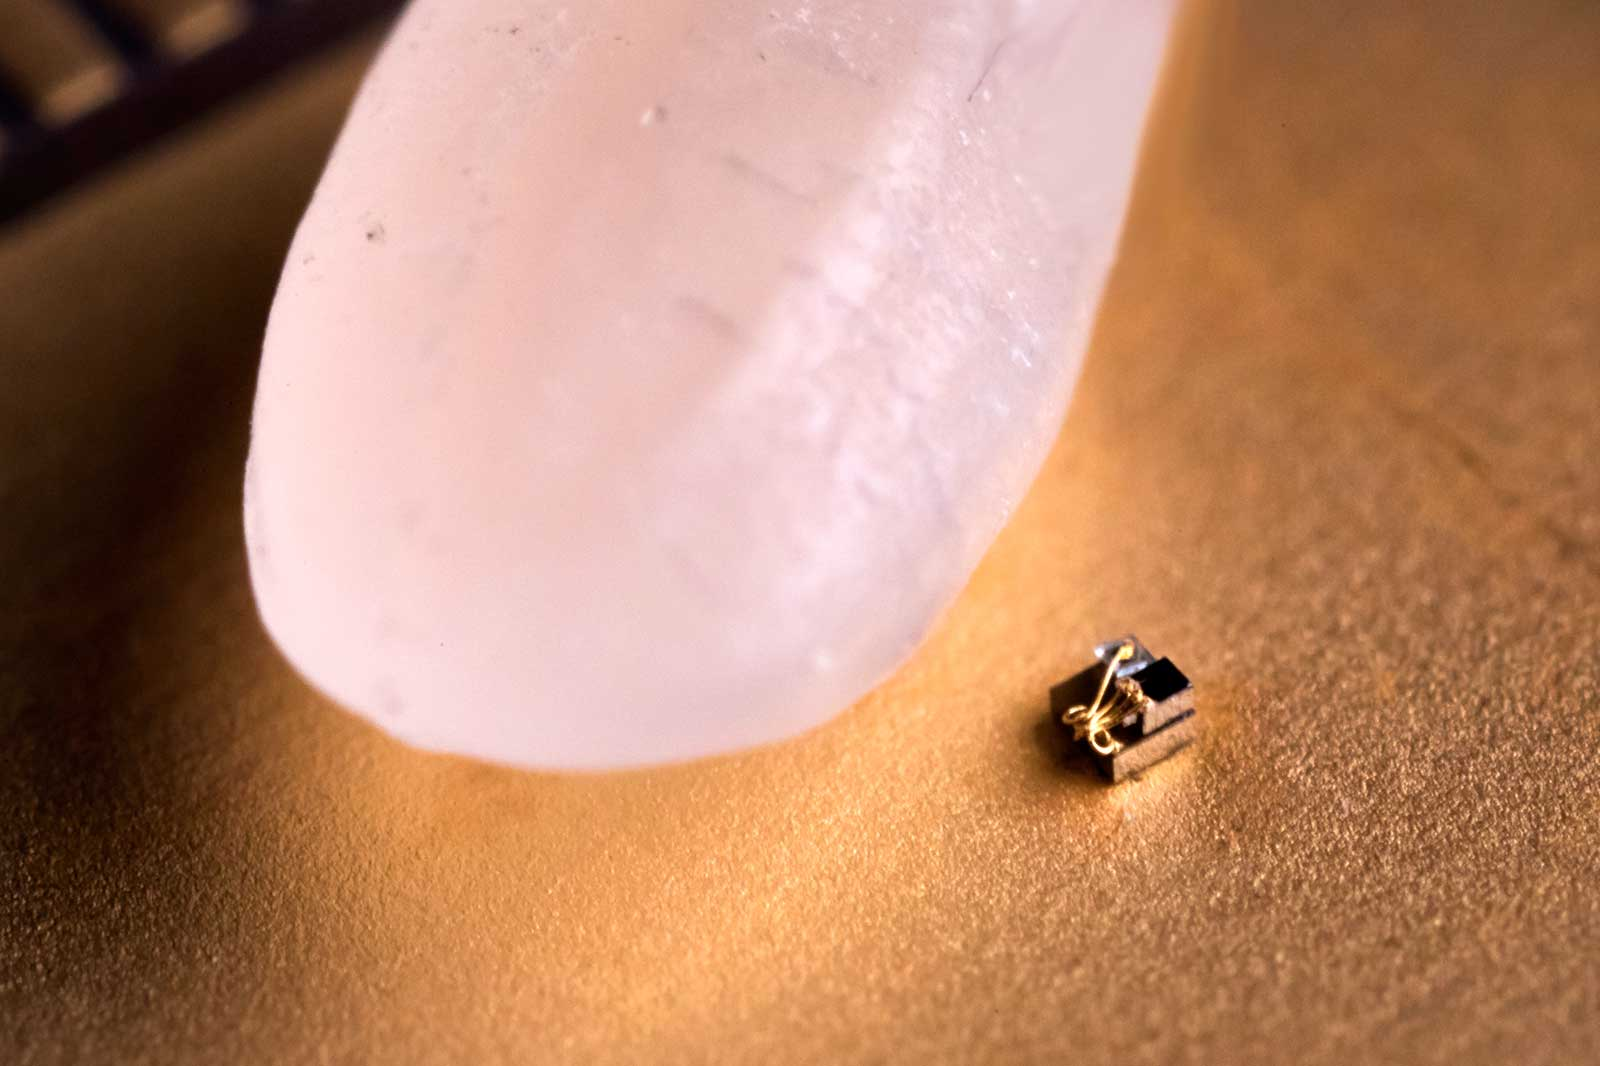 World's tiniest 'computer' makes a grain of rice seem massive